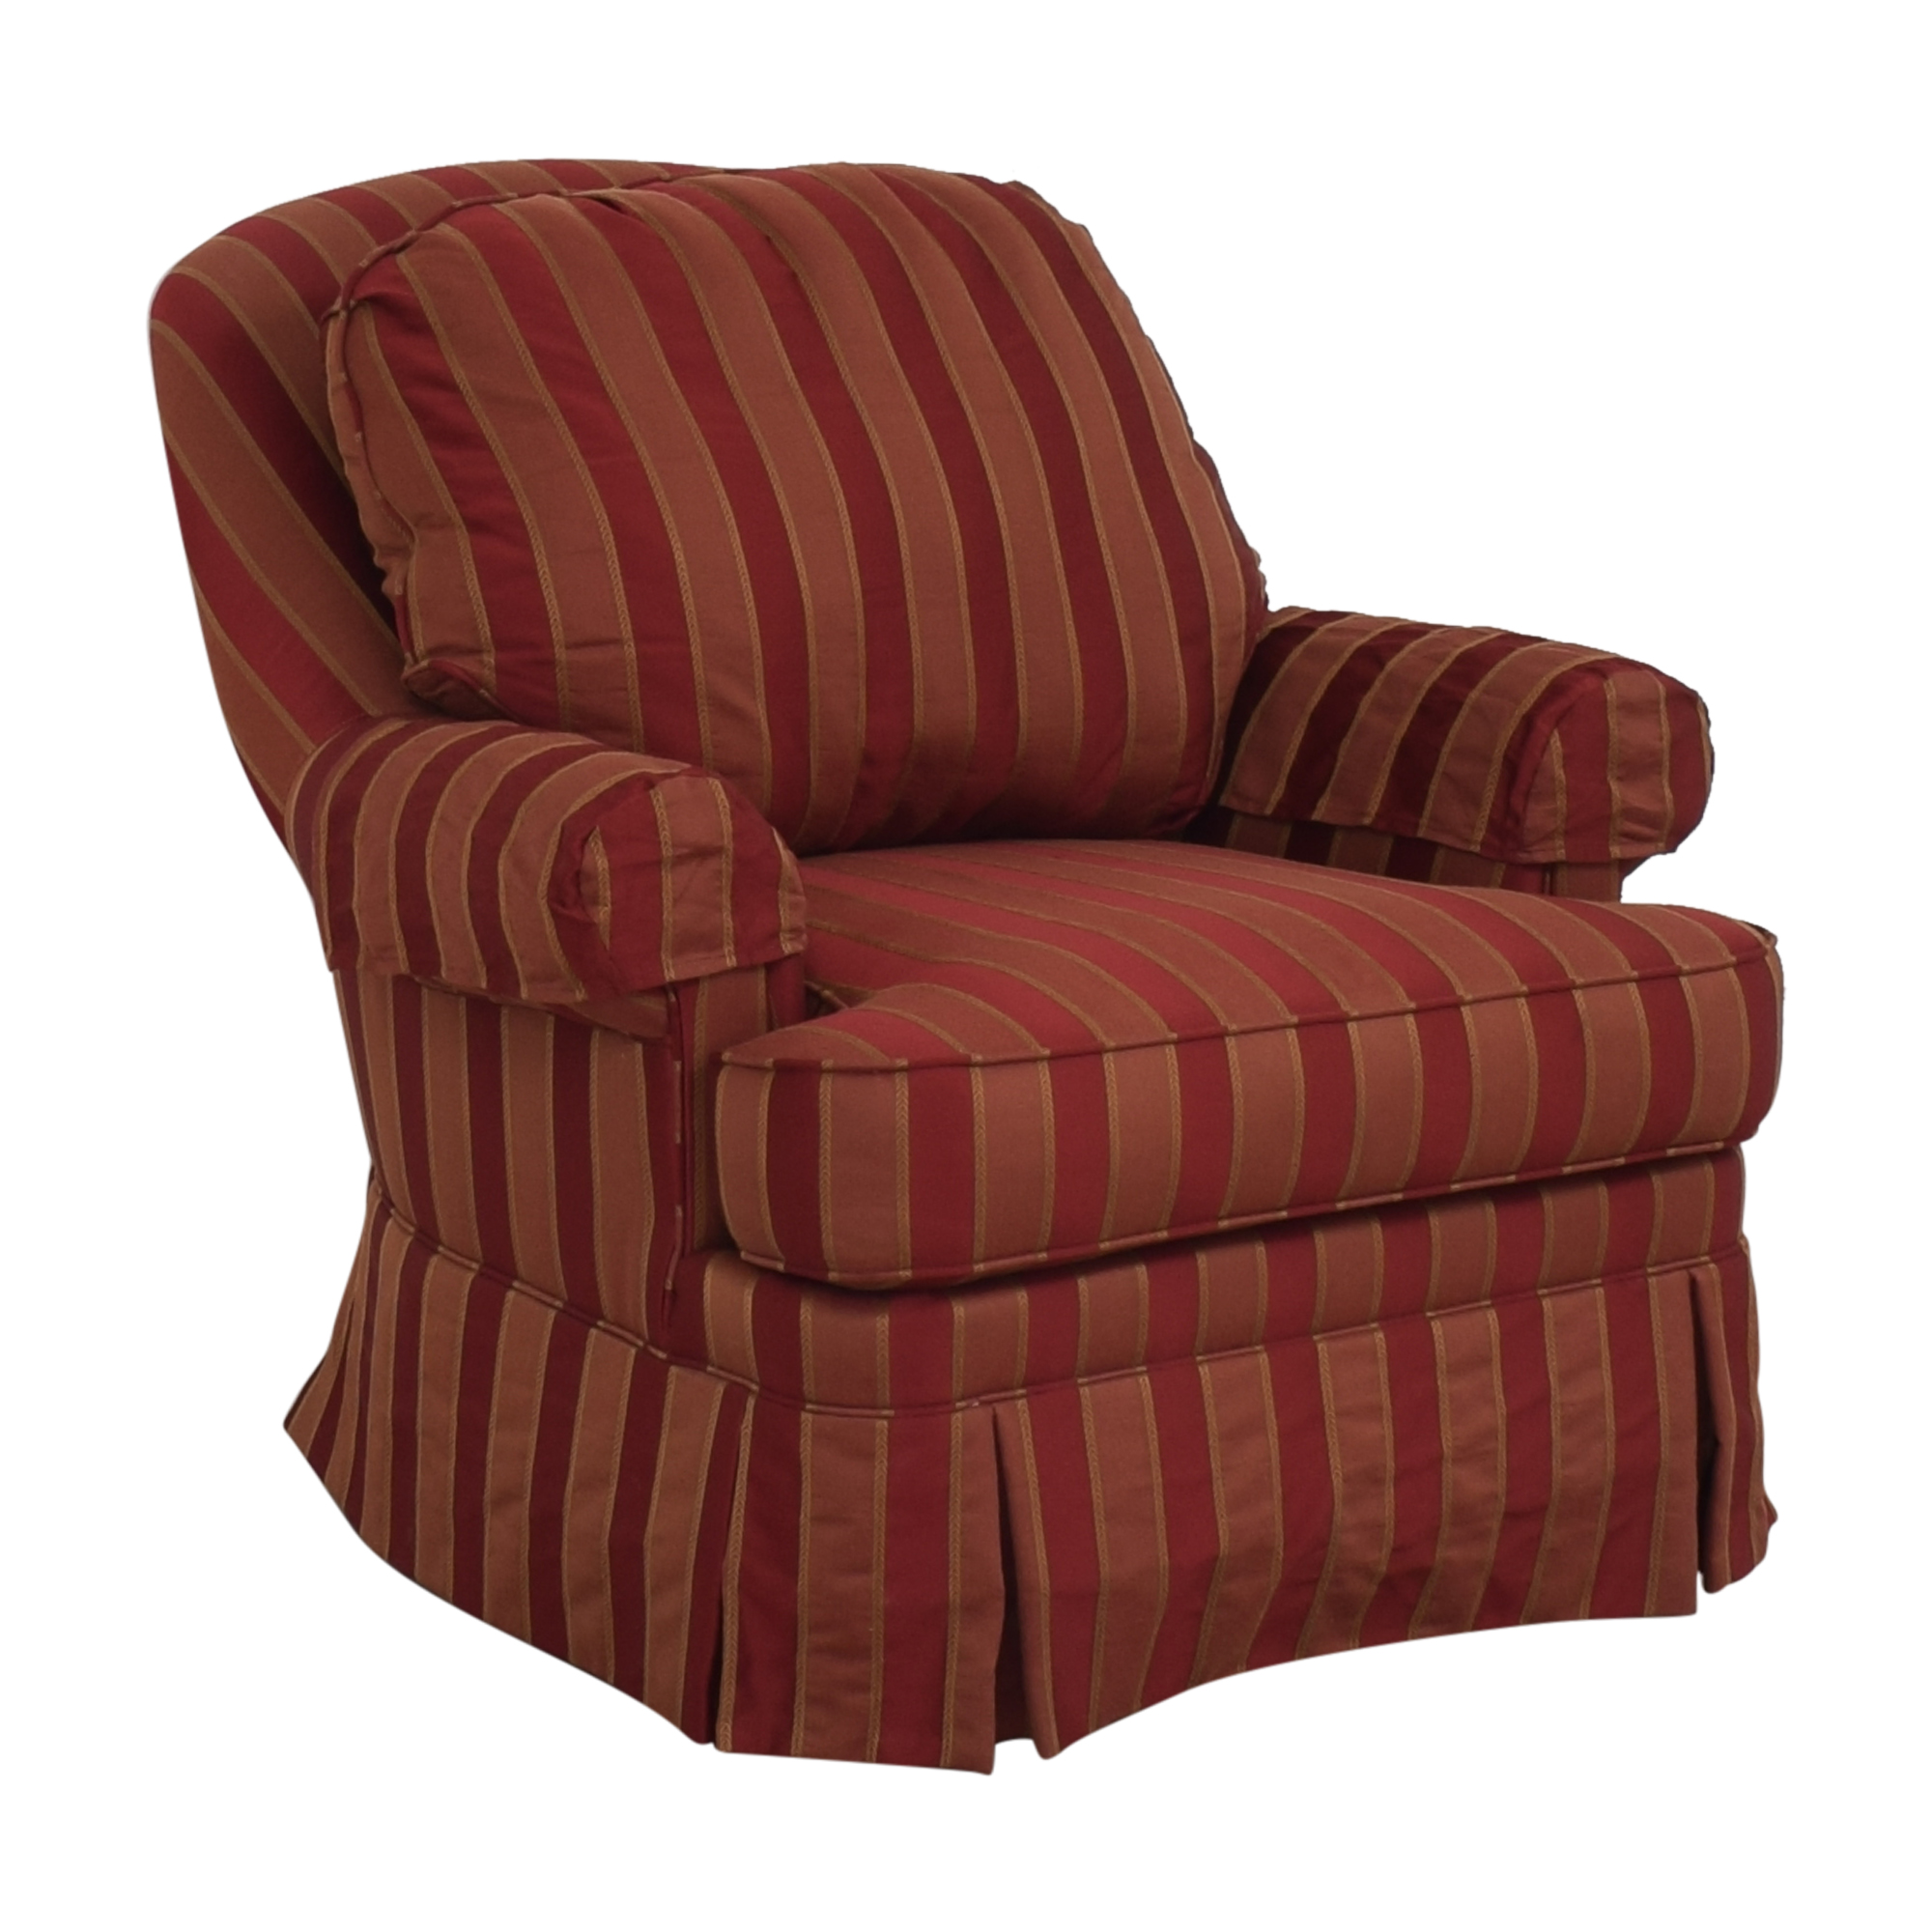 Ethan Allen Skirted Swivel Chair / Chairs